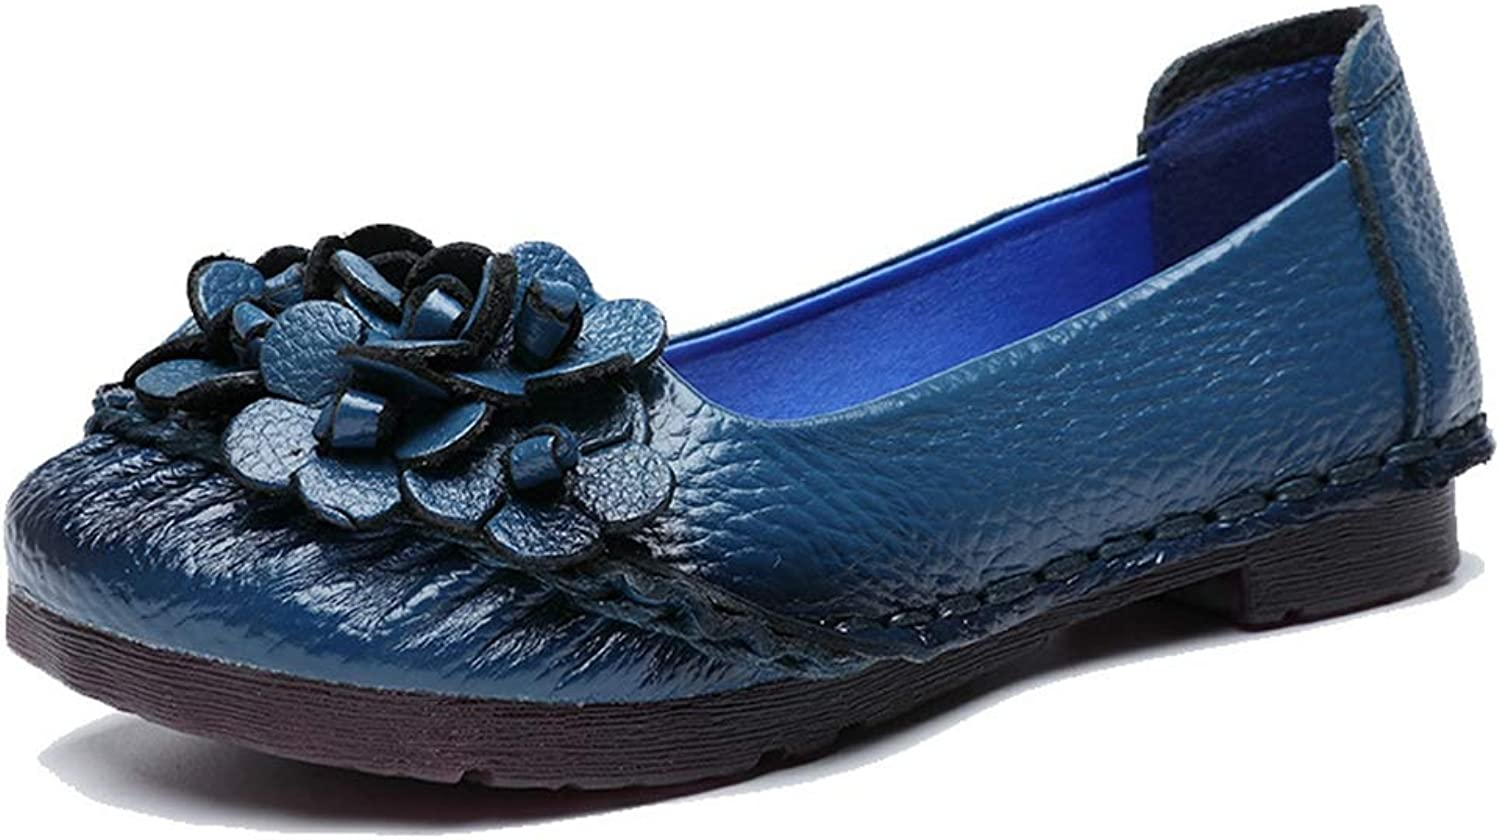 CYBLING Women's Leather Loafers Floral Slip On Driving Moccasins Casual Flat shoes